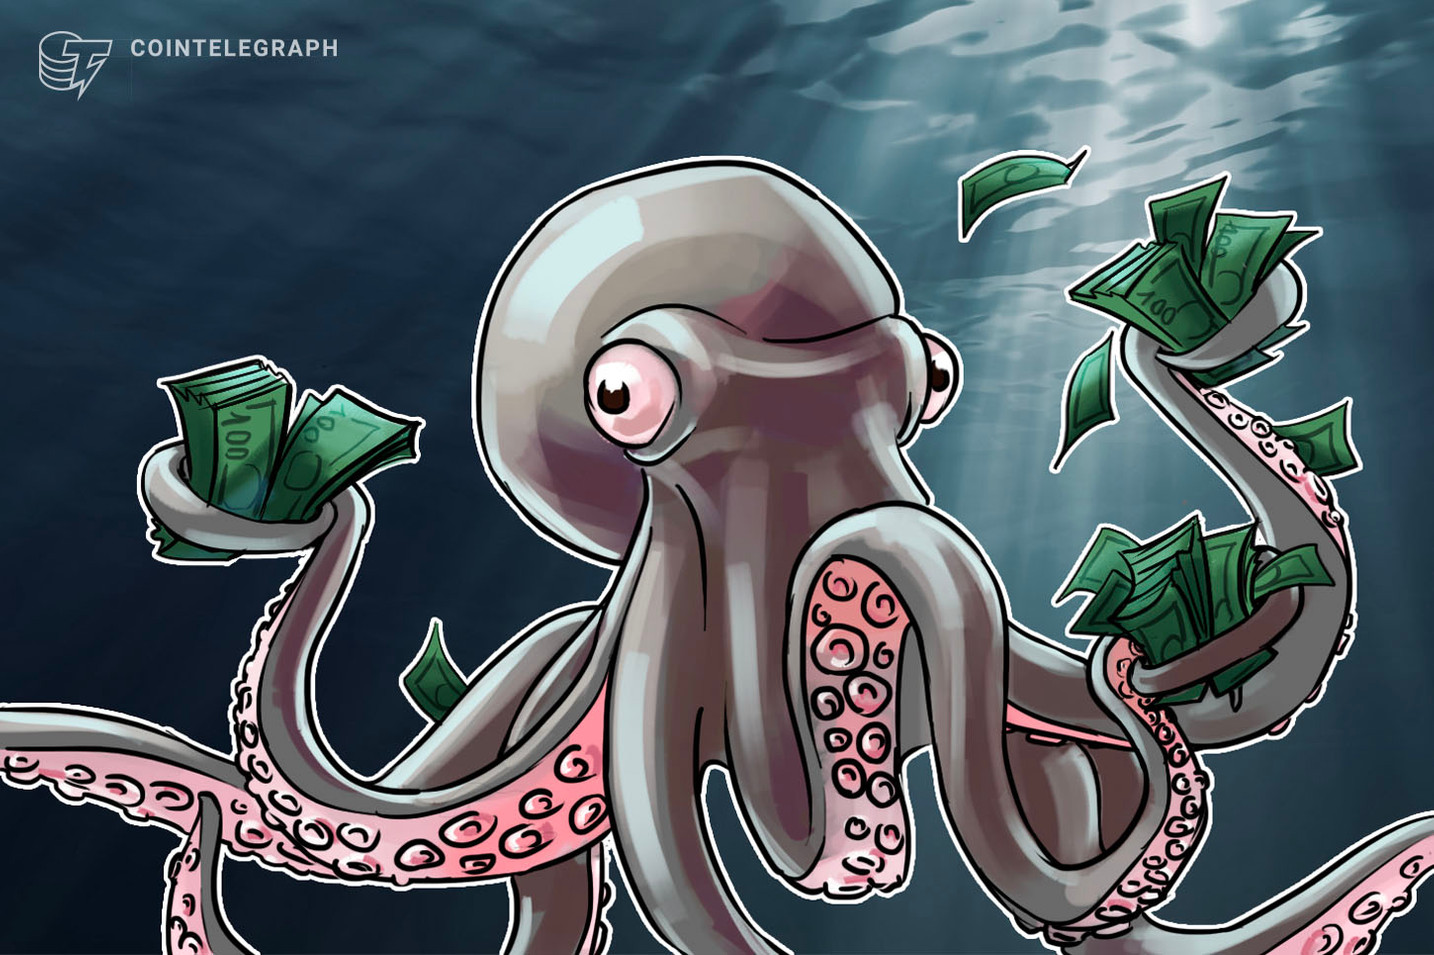 Following Community Poll, Kraken Delists Bitcoin SV